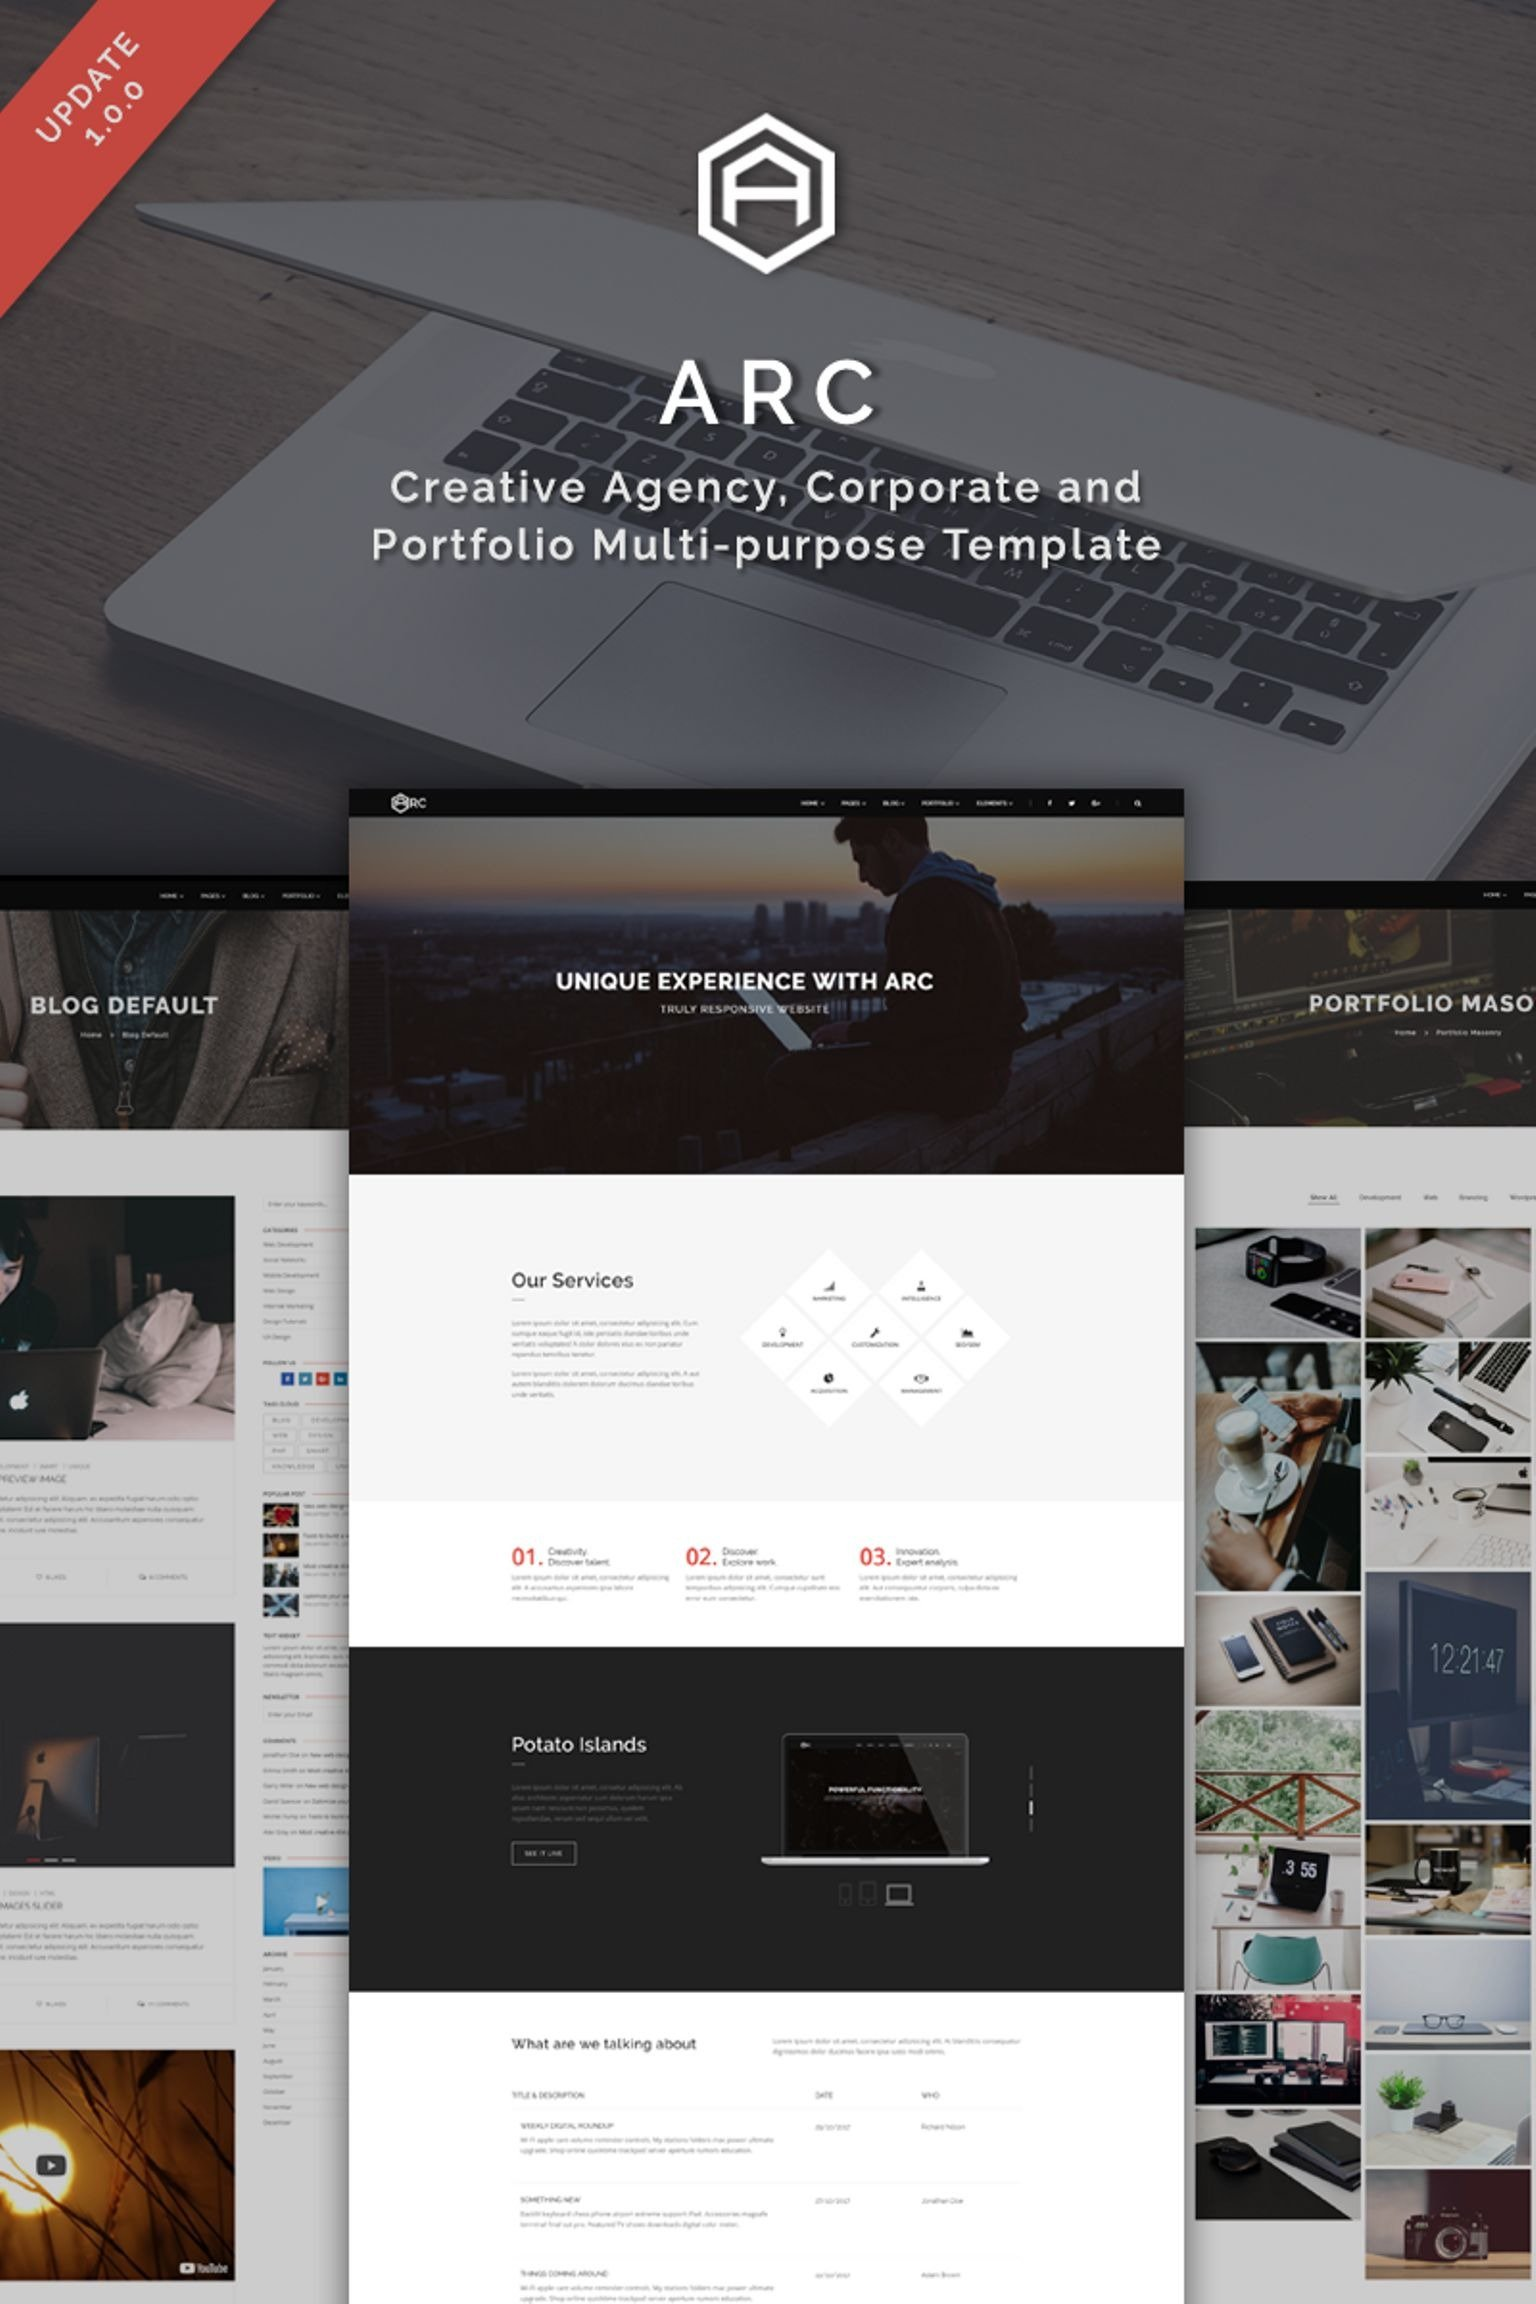 ARC - Creative Agency, Corporate and Portfolio Multi-purpose Screenshot